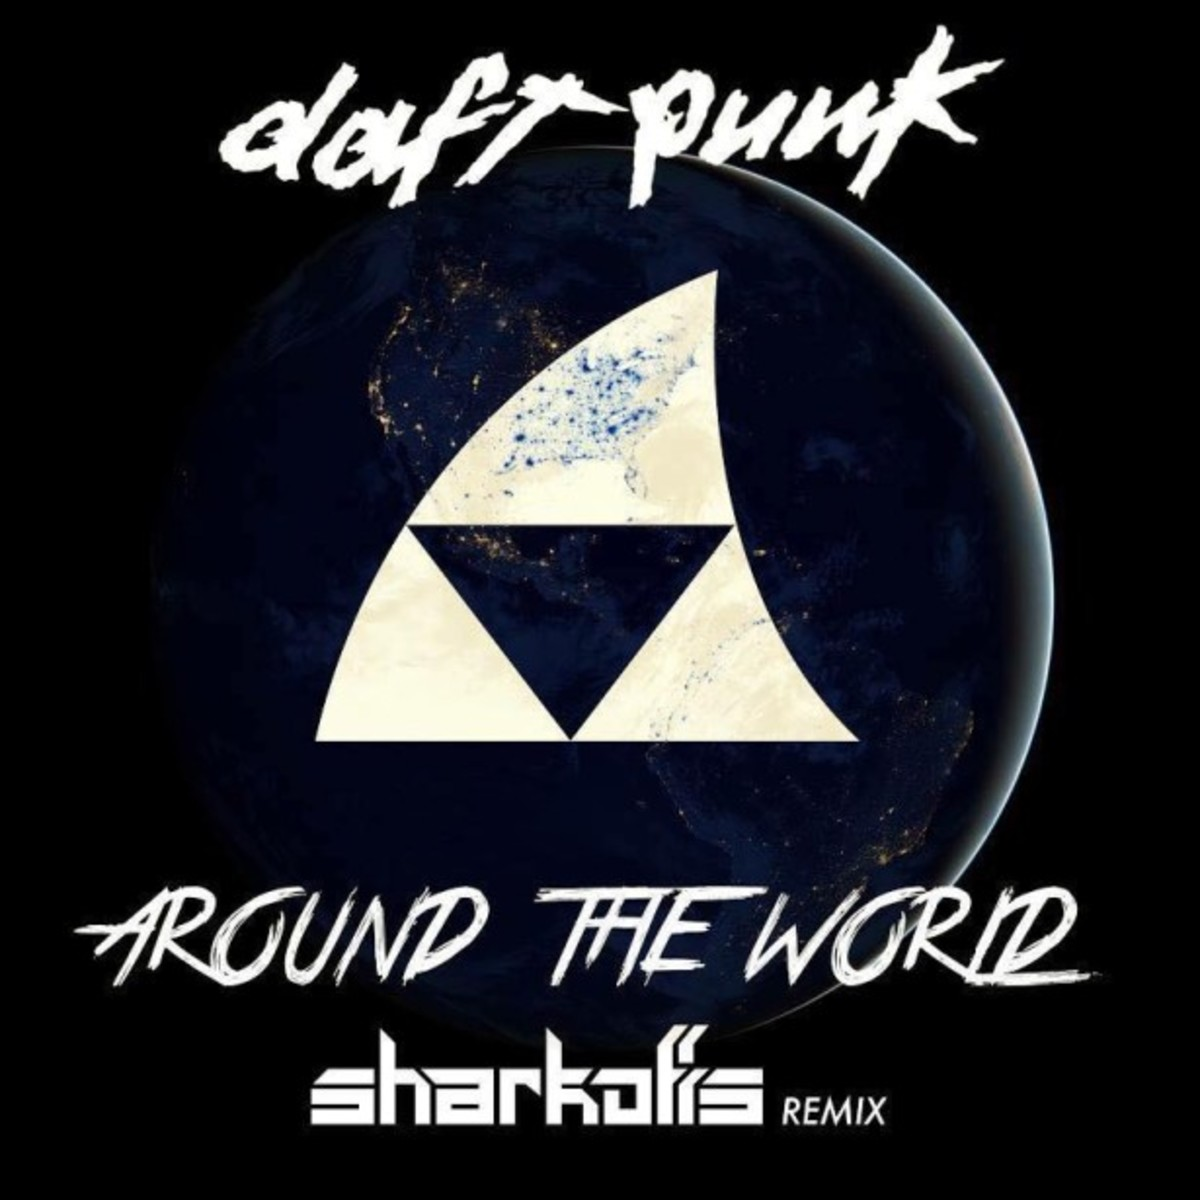 Mysterious Daft Punk Remix From Sharkoffs [FREE DOWNLOAD]